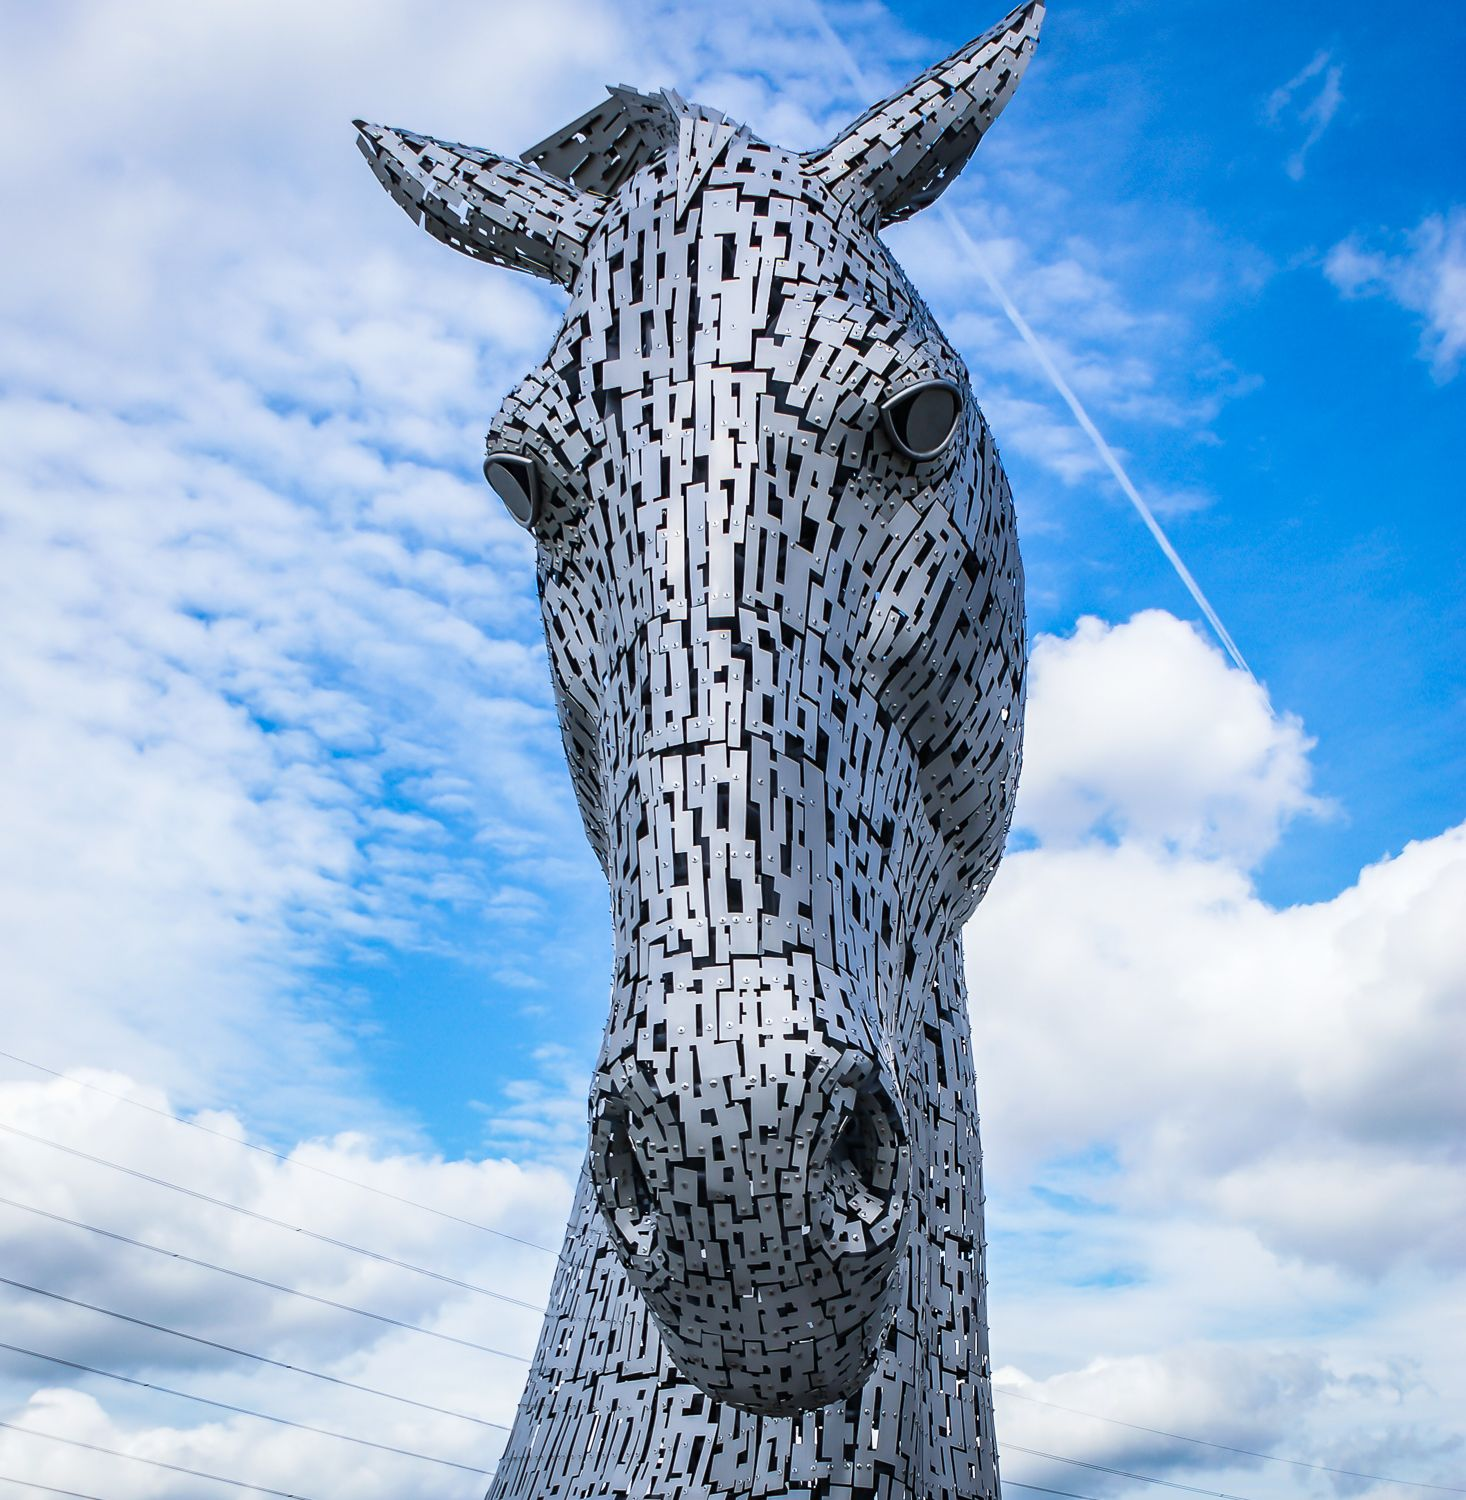 Kelpies Lion sculpture, Sculpture, Statue